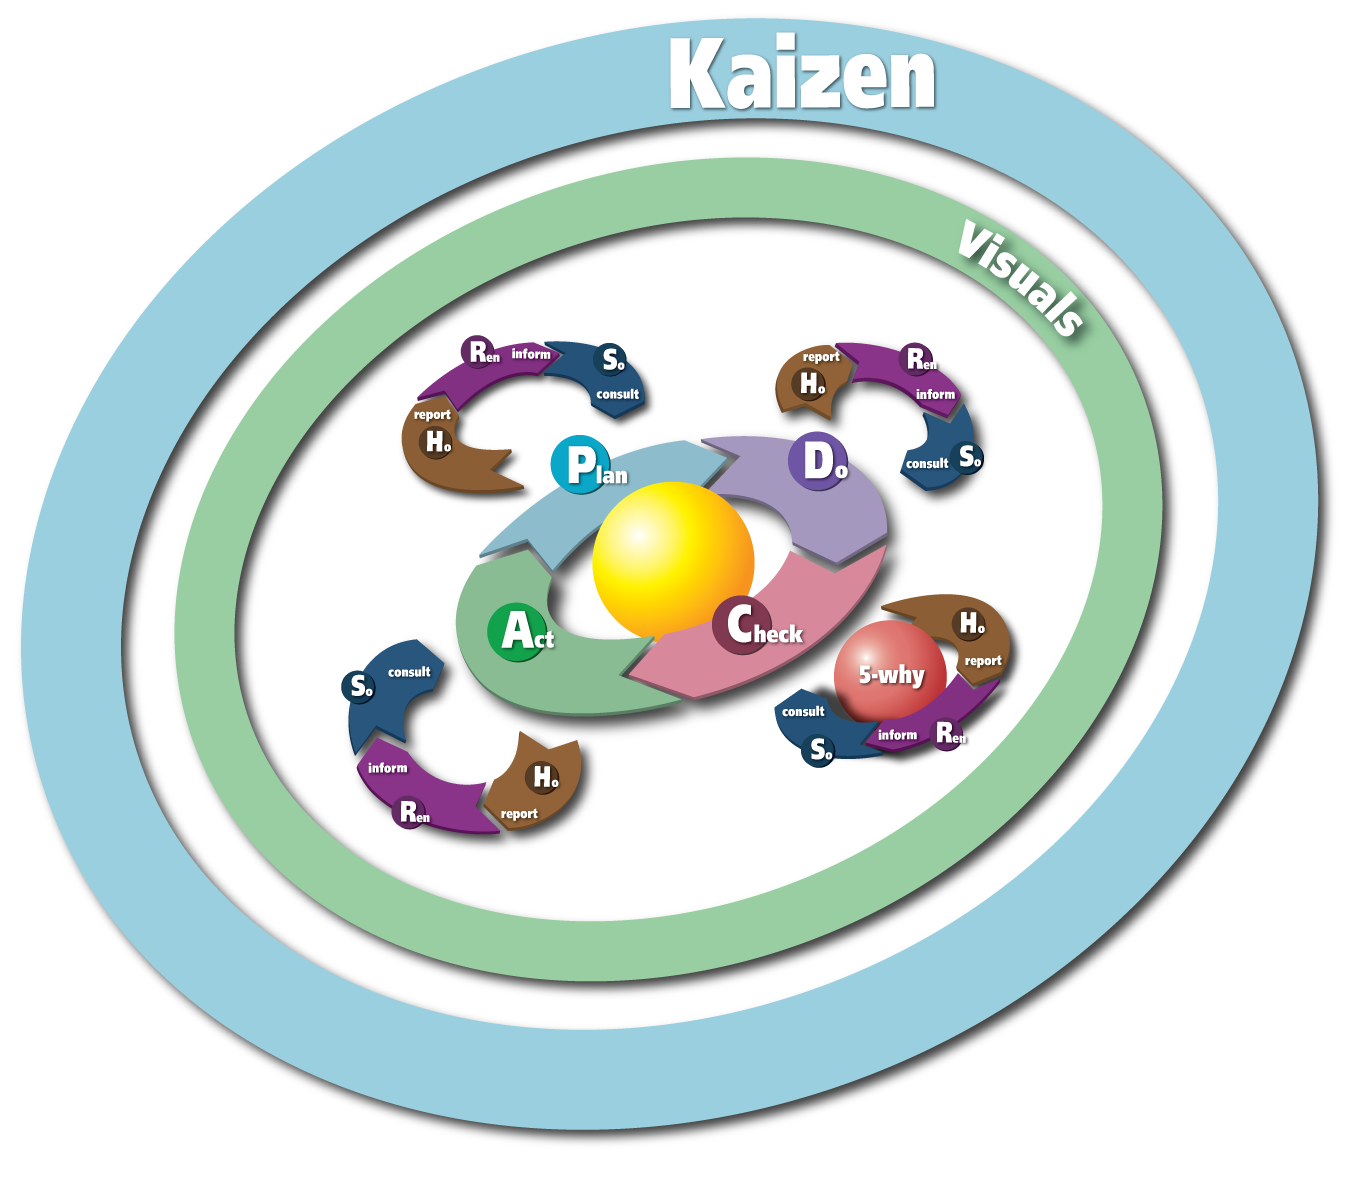 How to implement kaizen karn g bulsuk full speed ahead learn the basics of how to use the pdca cycle plan do check act the very first quality improvement and effective project management tool in your arsenal 1betcityfo Images